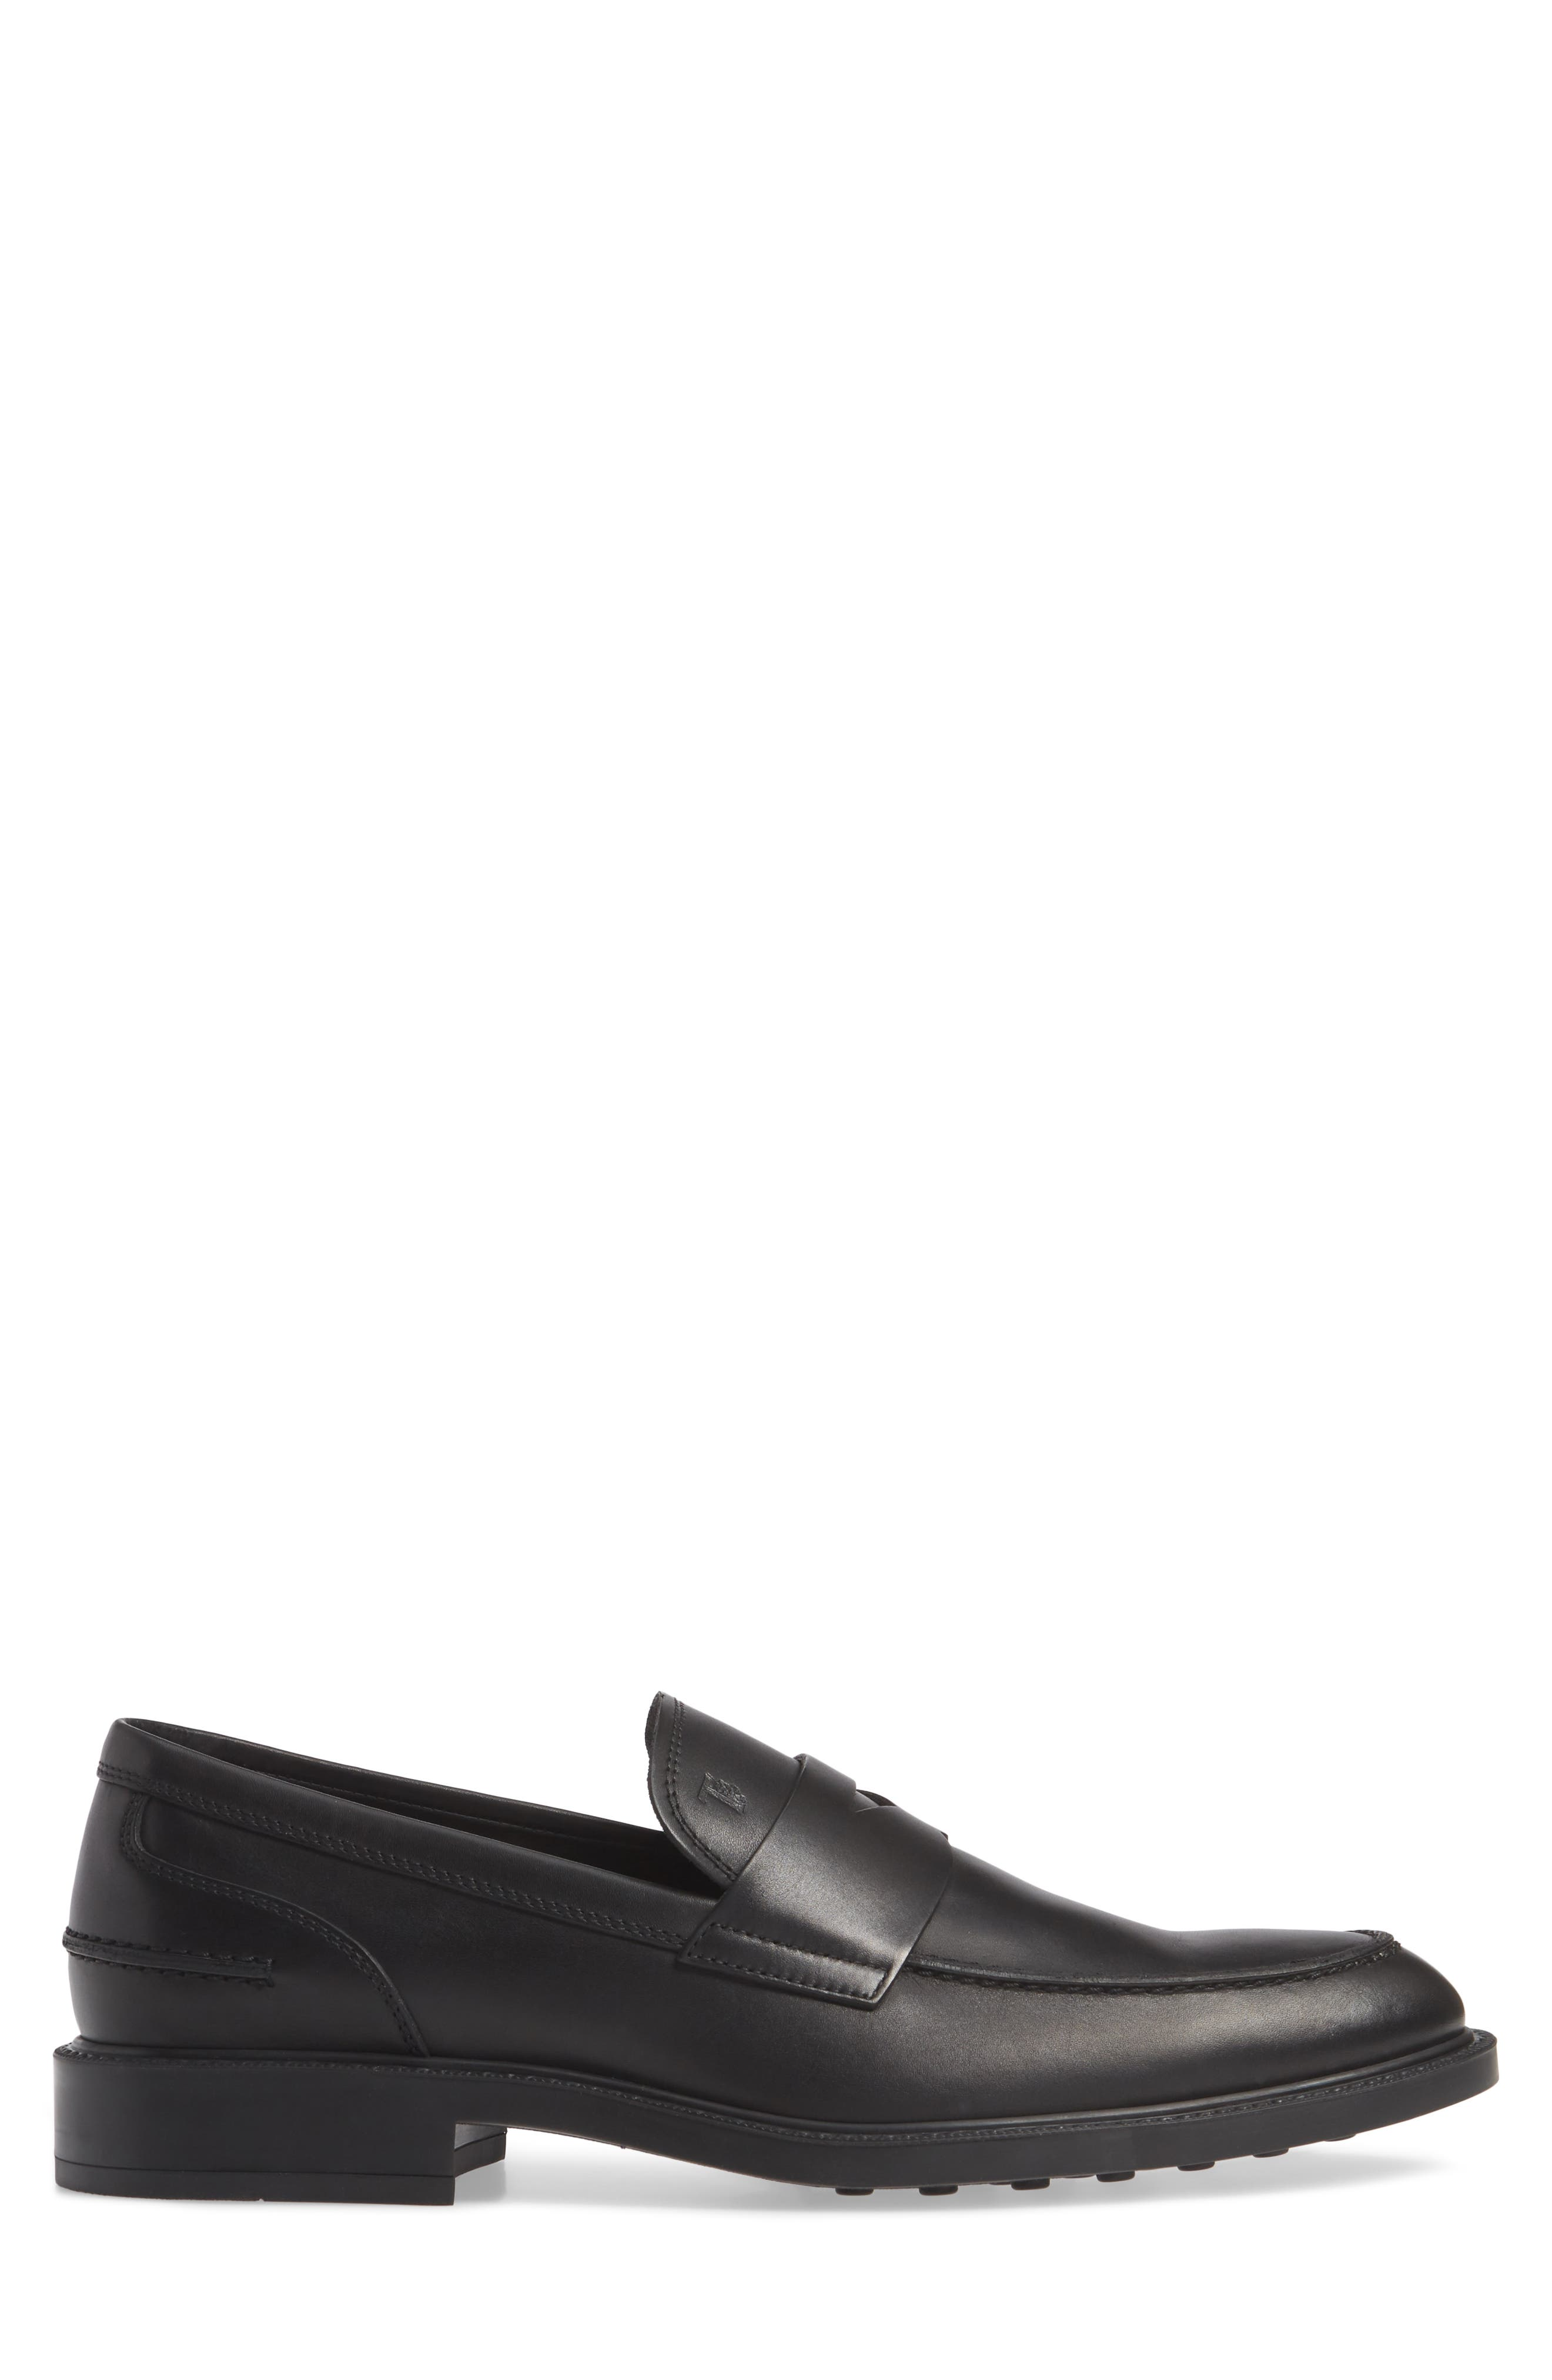 TOD'S, Mocassino Water Repellent Penny Loafer, Alternate thumbnail 3, color, BLACK/ BLACK